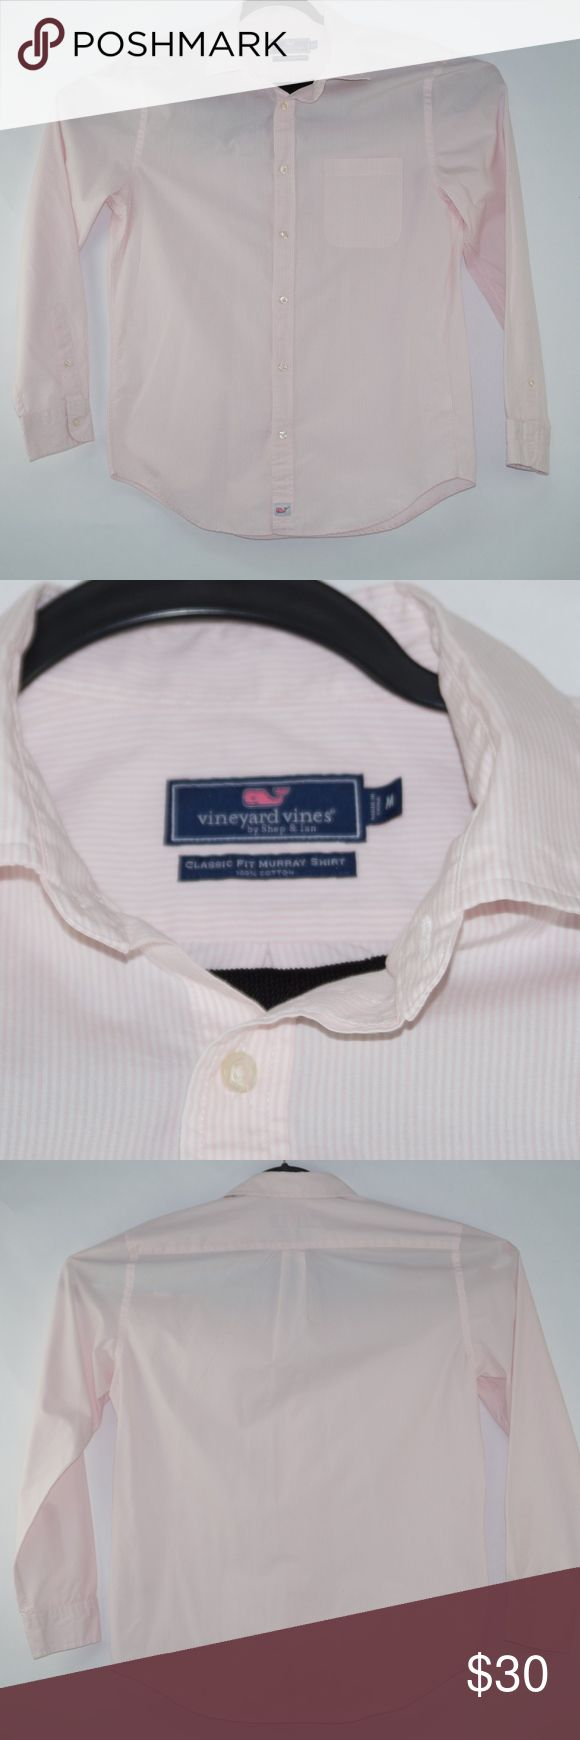 Vineyard Vines Mens Classic Fit Murray Shirt Sz M Pre-Owned Men's Long Sleeve Button Down Classic Fit Murray Pink and White Striped Size M by Vineyard Vines no rips no holes, Check Pictures Please check your measurements before purchasing! Please note actual color(s) may appear slightly different depending on screen resolution. 100% Cotton Measurements were taken lying flat and are approximate Chest   21